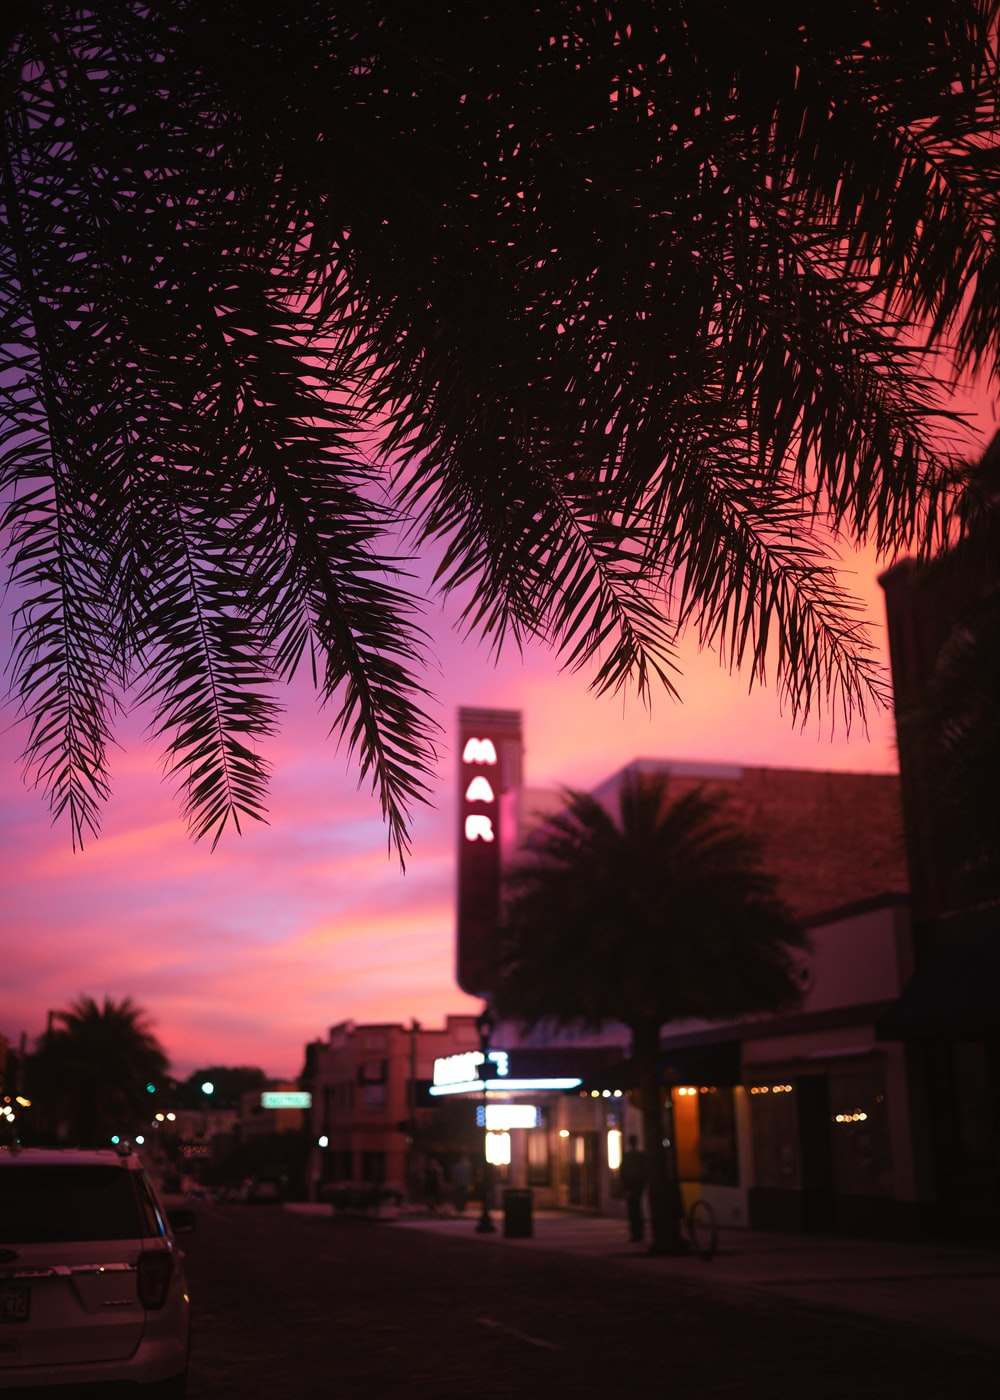 palm tree near building during sunset